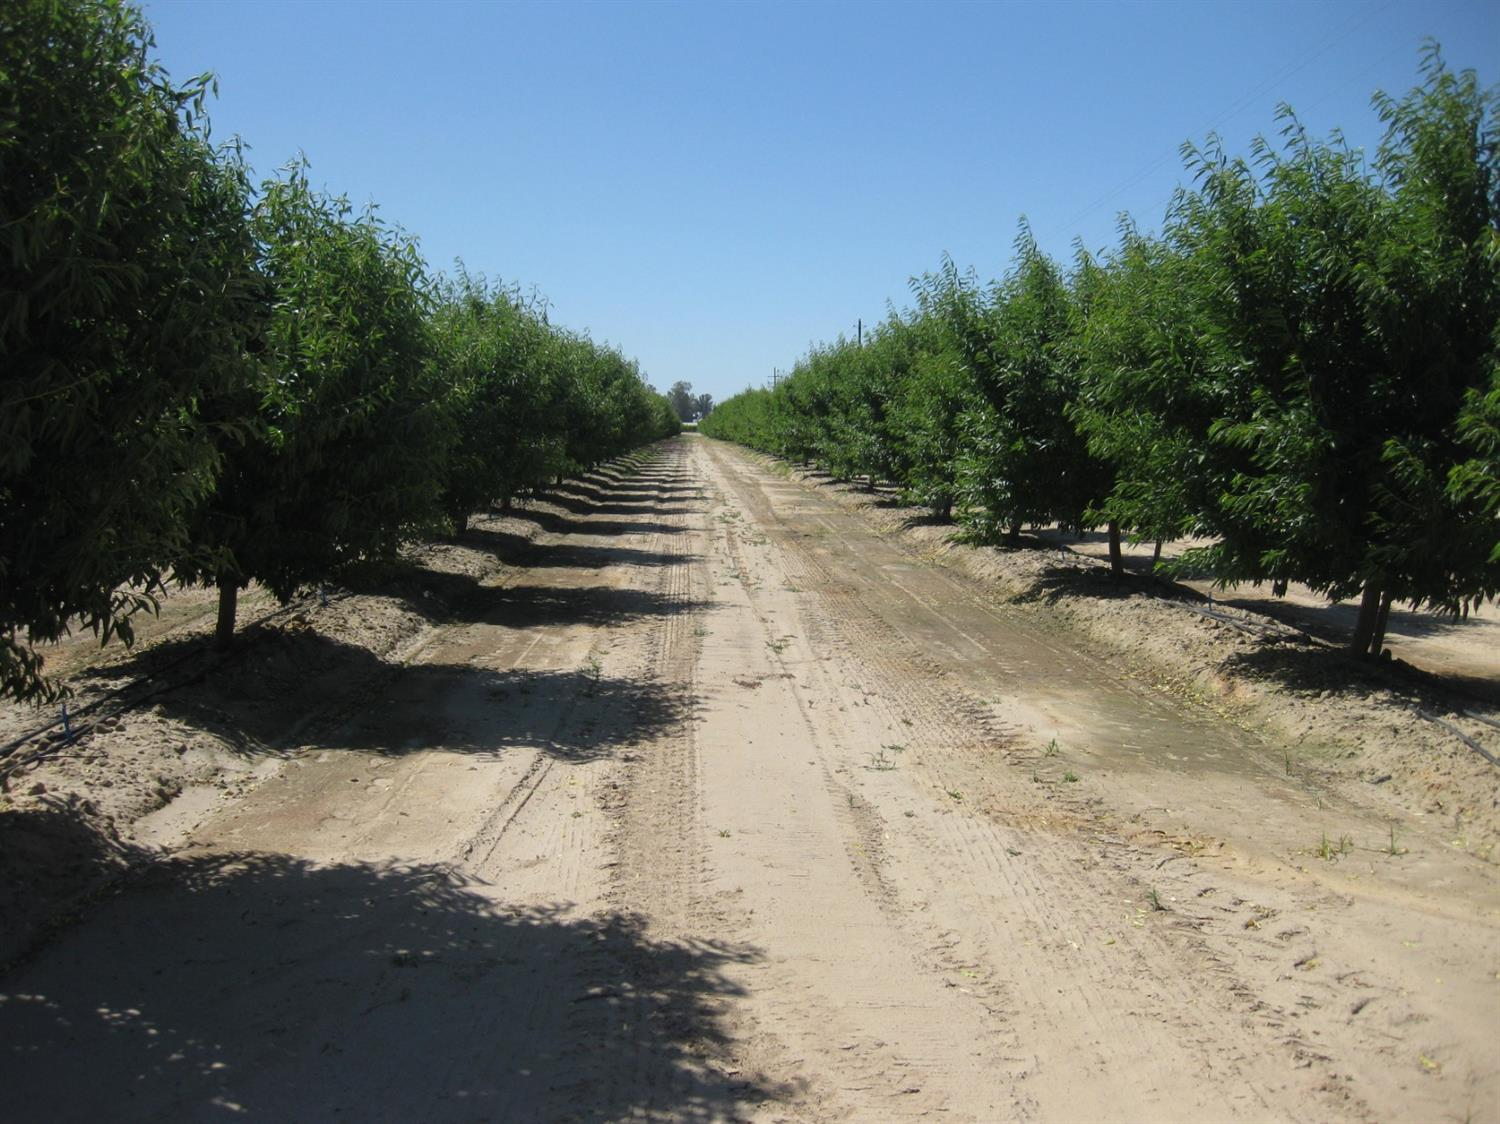 Almost 123 acres, 40 acres are Almonds Independance variety in the 4th leave.Trees were planted in Jan,2015 spacing 22'x16' and total 4800 trees. CID water is available but owner not using ditch water, irrigated by single drip line and micro yet. Trees were planted after fumigation was done, there is 40 HP submersible brand new pump set up at 150' and water level is approximately 60'  and 83 acres are Grapes (10 acres are Selma Pete and rest of those are Thompson ). Grapes are irrigated with the flood irrigation. There is 40 HP pump and ditch water is available. Farm is with Sun Maid coop membership which can be transfer to the new owner.This is good producing ranch with good soil and location.There are 3 Apn included in the sale ( 348-170-21,385-090-60S & 385-090-68S